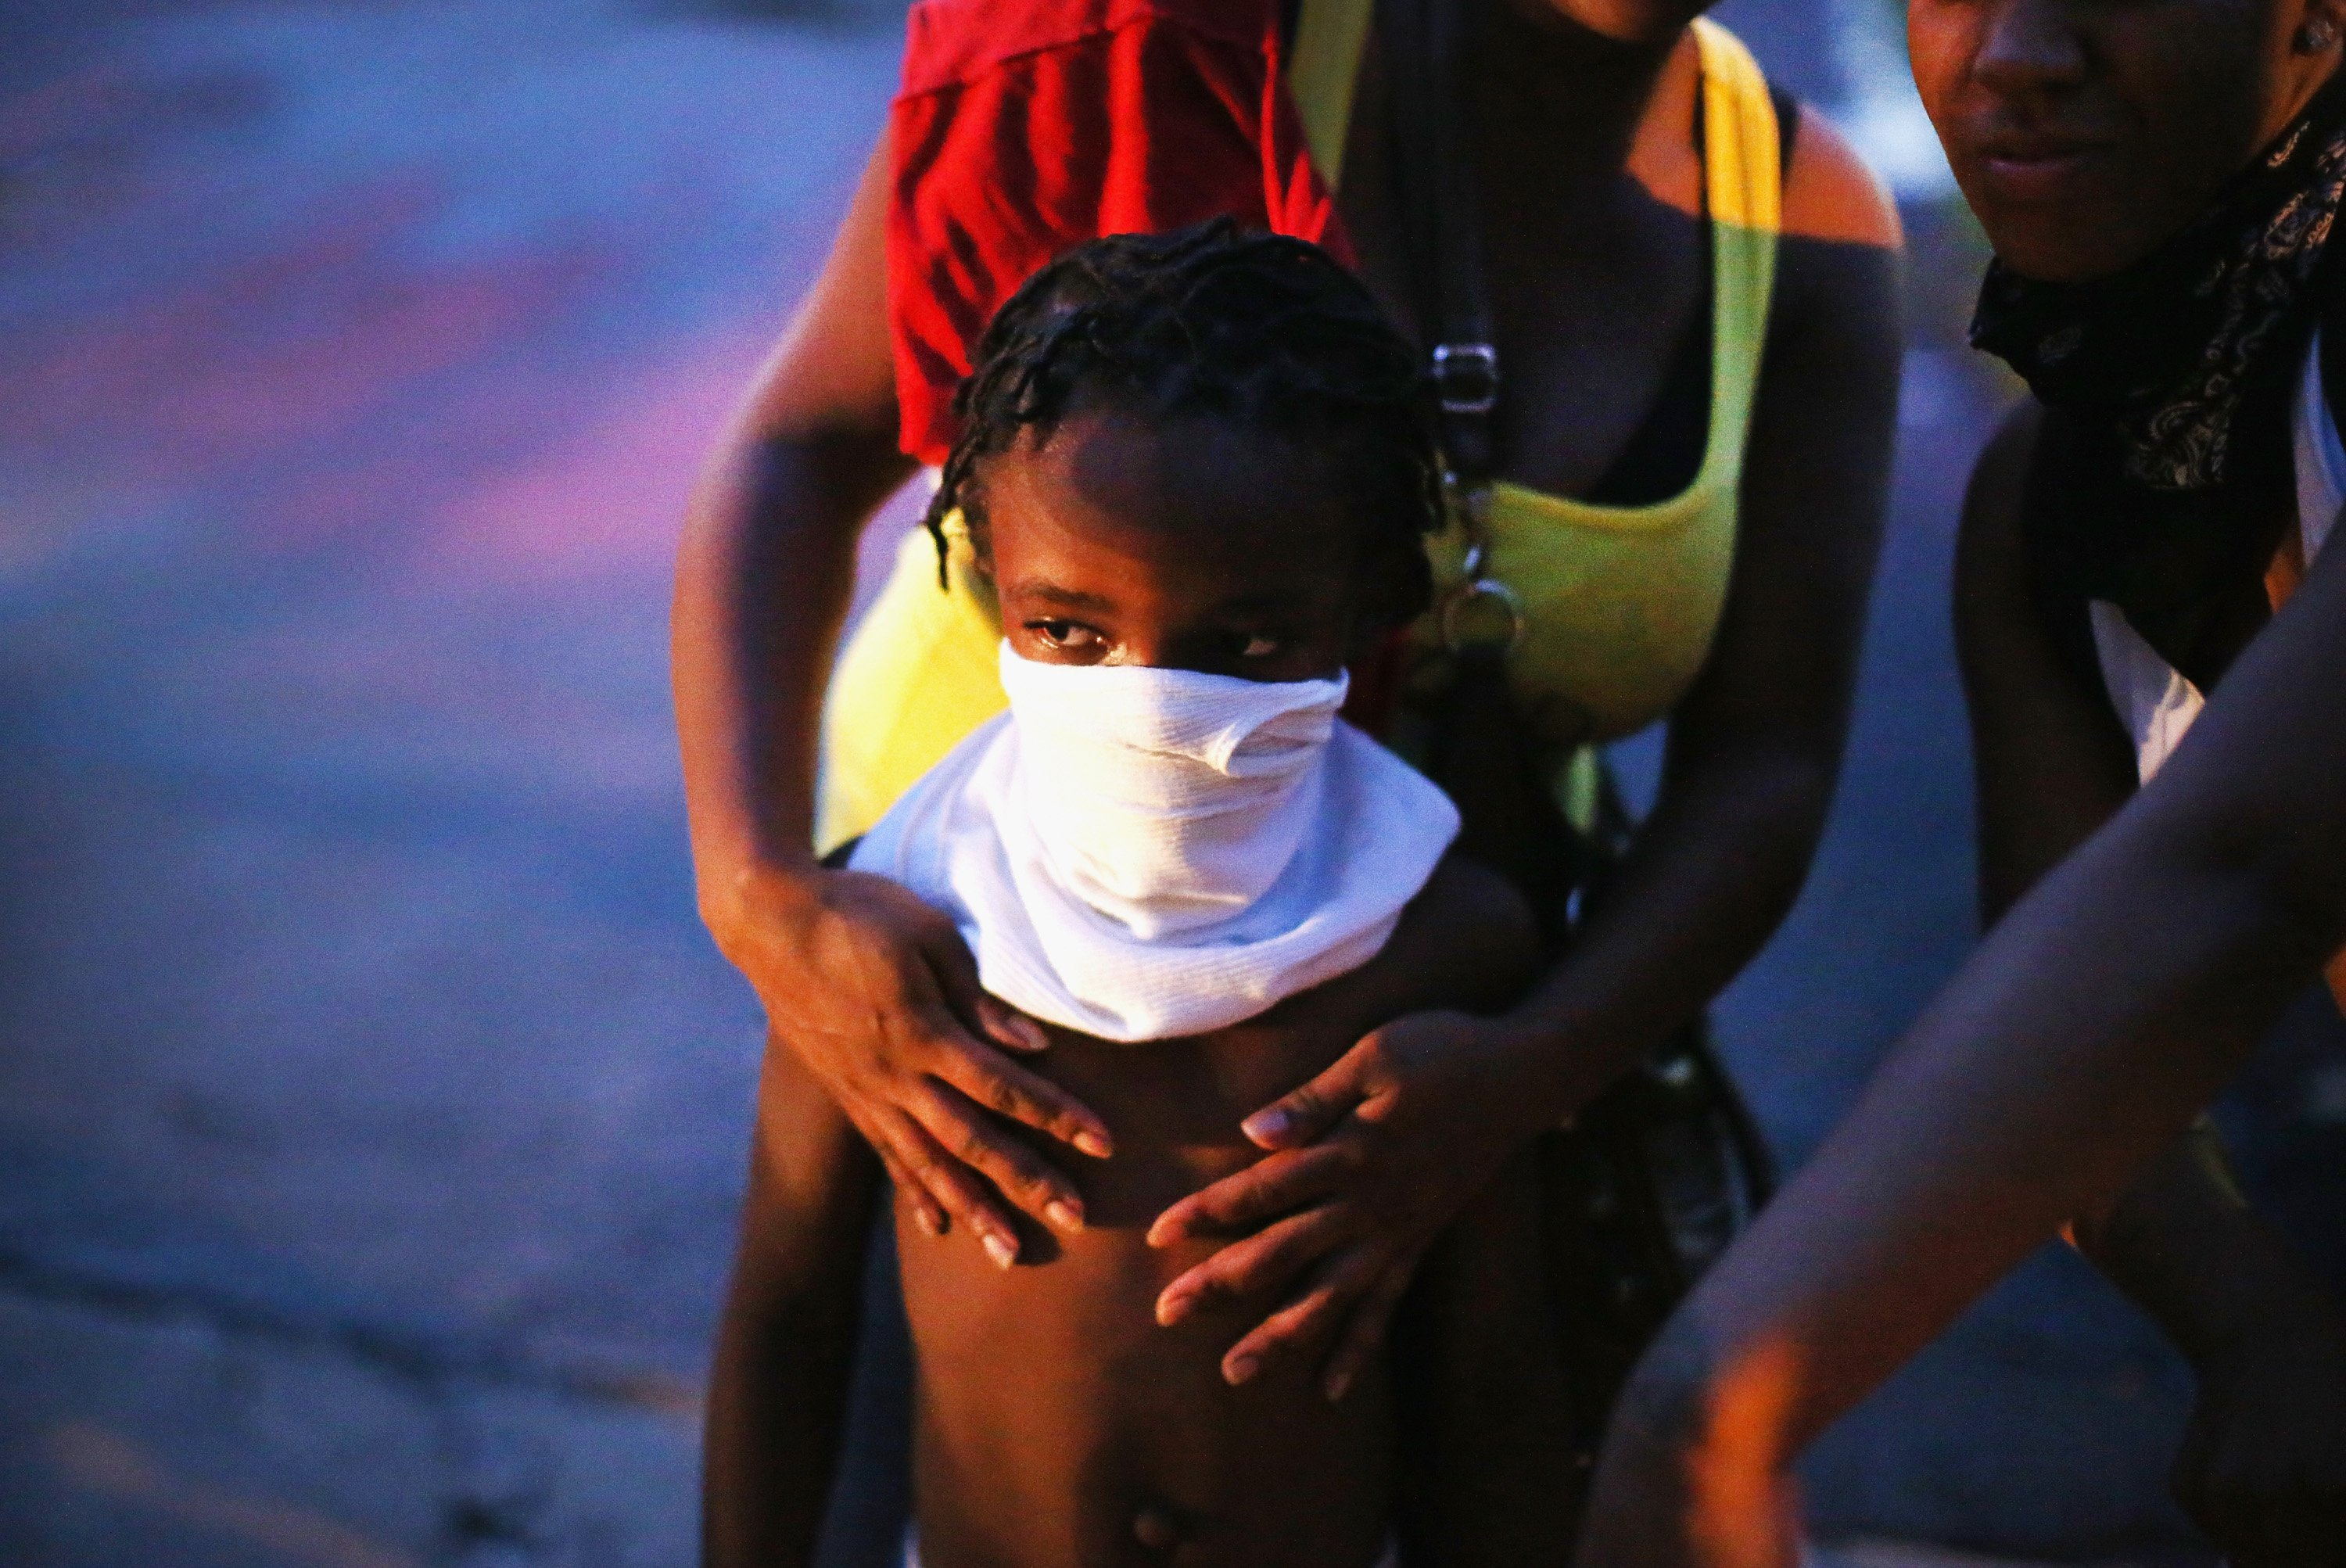 A child uses a rag to shield his face from tear gas fired by riot police, who used it to force protestors from the business district into nearby neighborhoods in Ferguson, Mo. on Aug. 11, 2014.